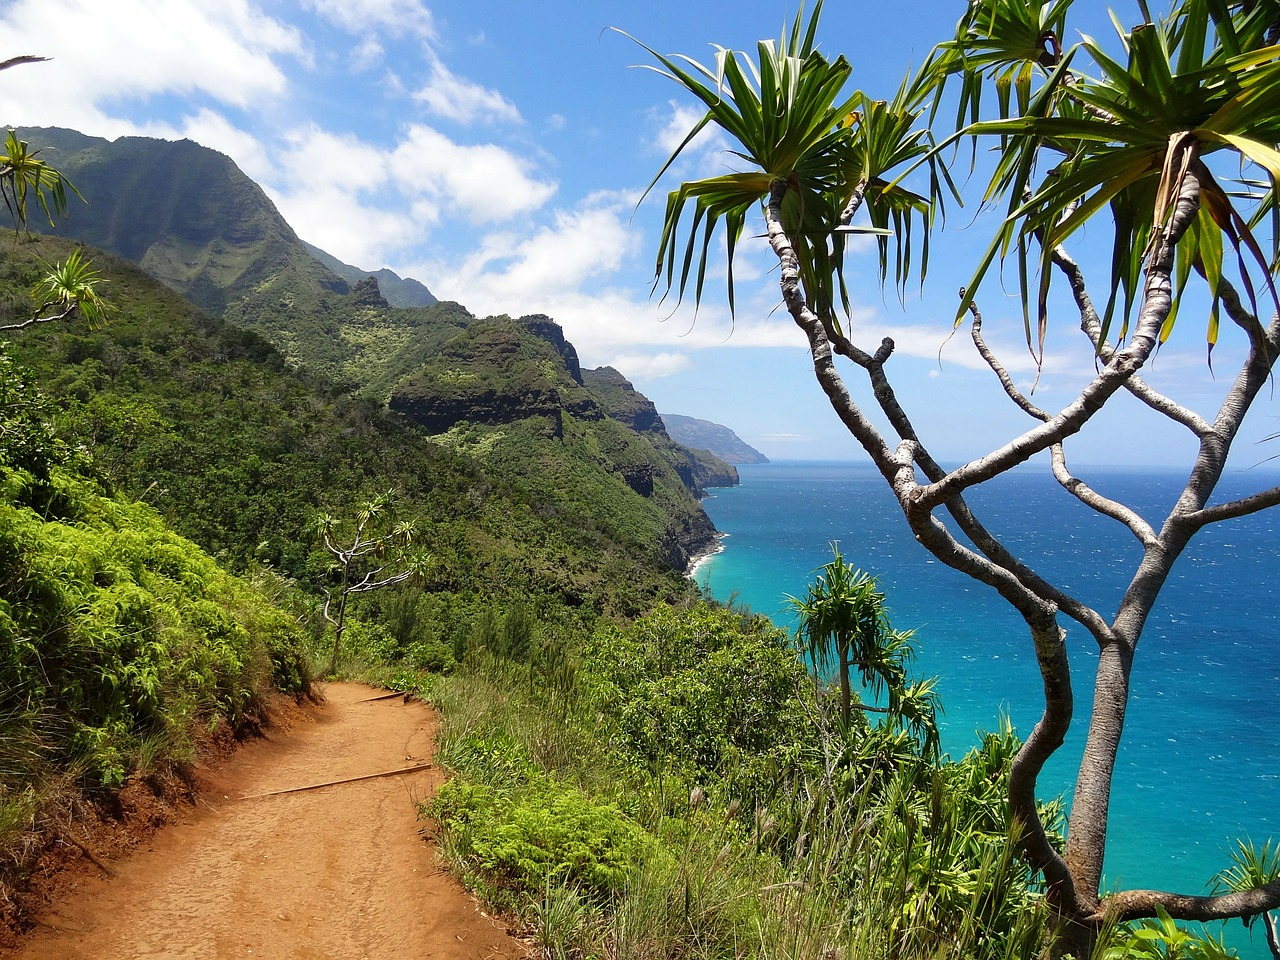 When you go to explore Kauai, be sure to check out the Na Pali Coast ... photo by CC user kdvandeventer on pixabay